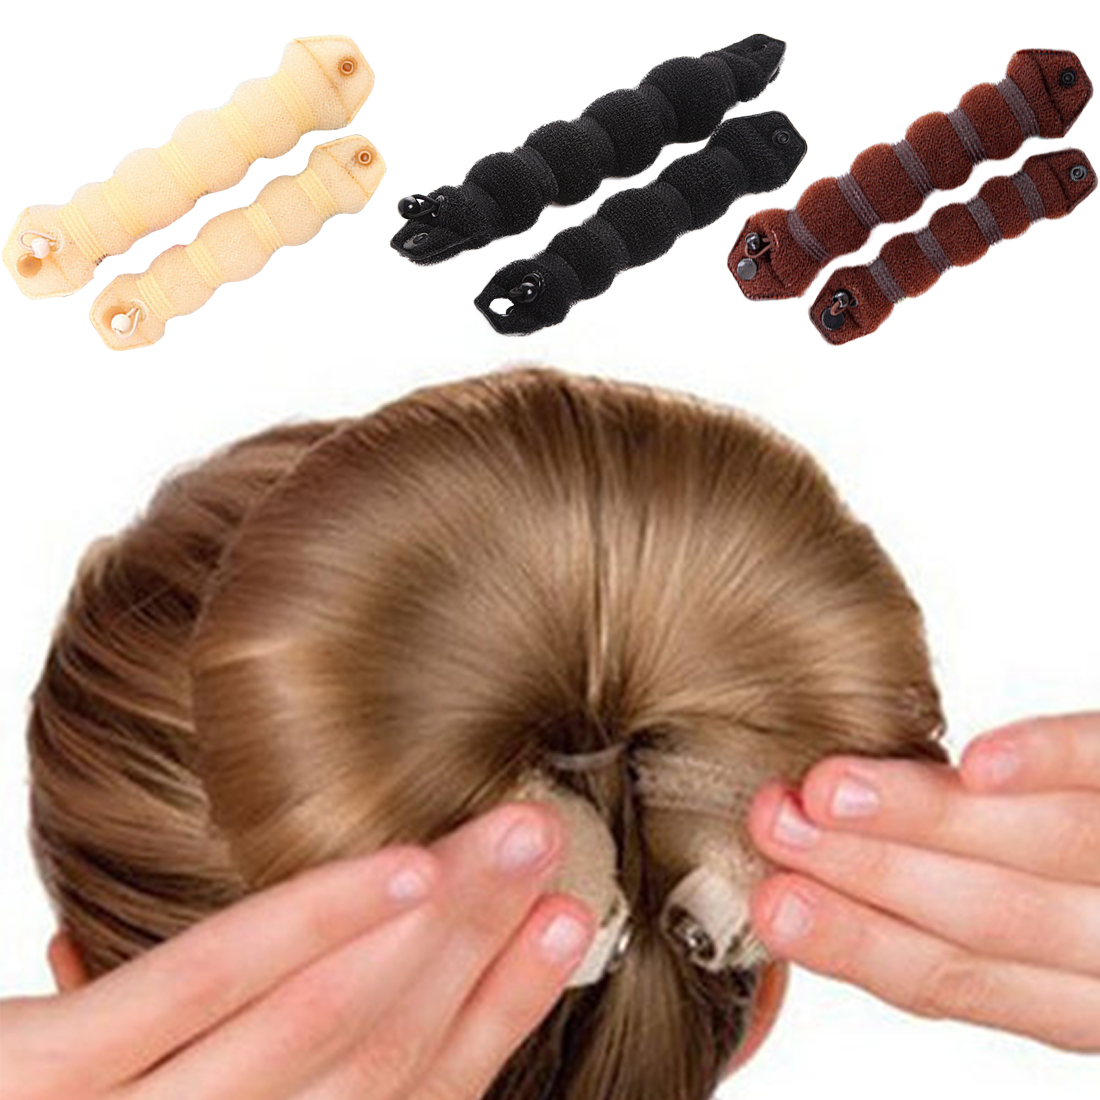 2pcs Sponge Hair Styling Donut Bun Maker Magic Former Ring Shaper Styler Tool Women/girl beauty